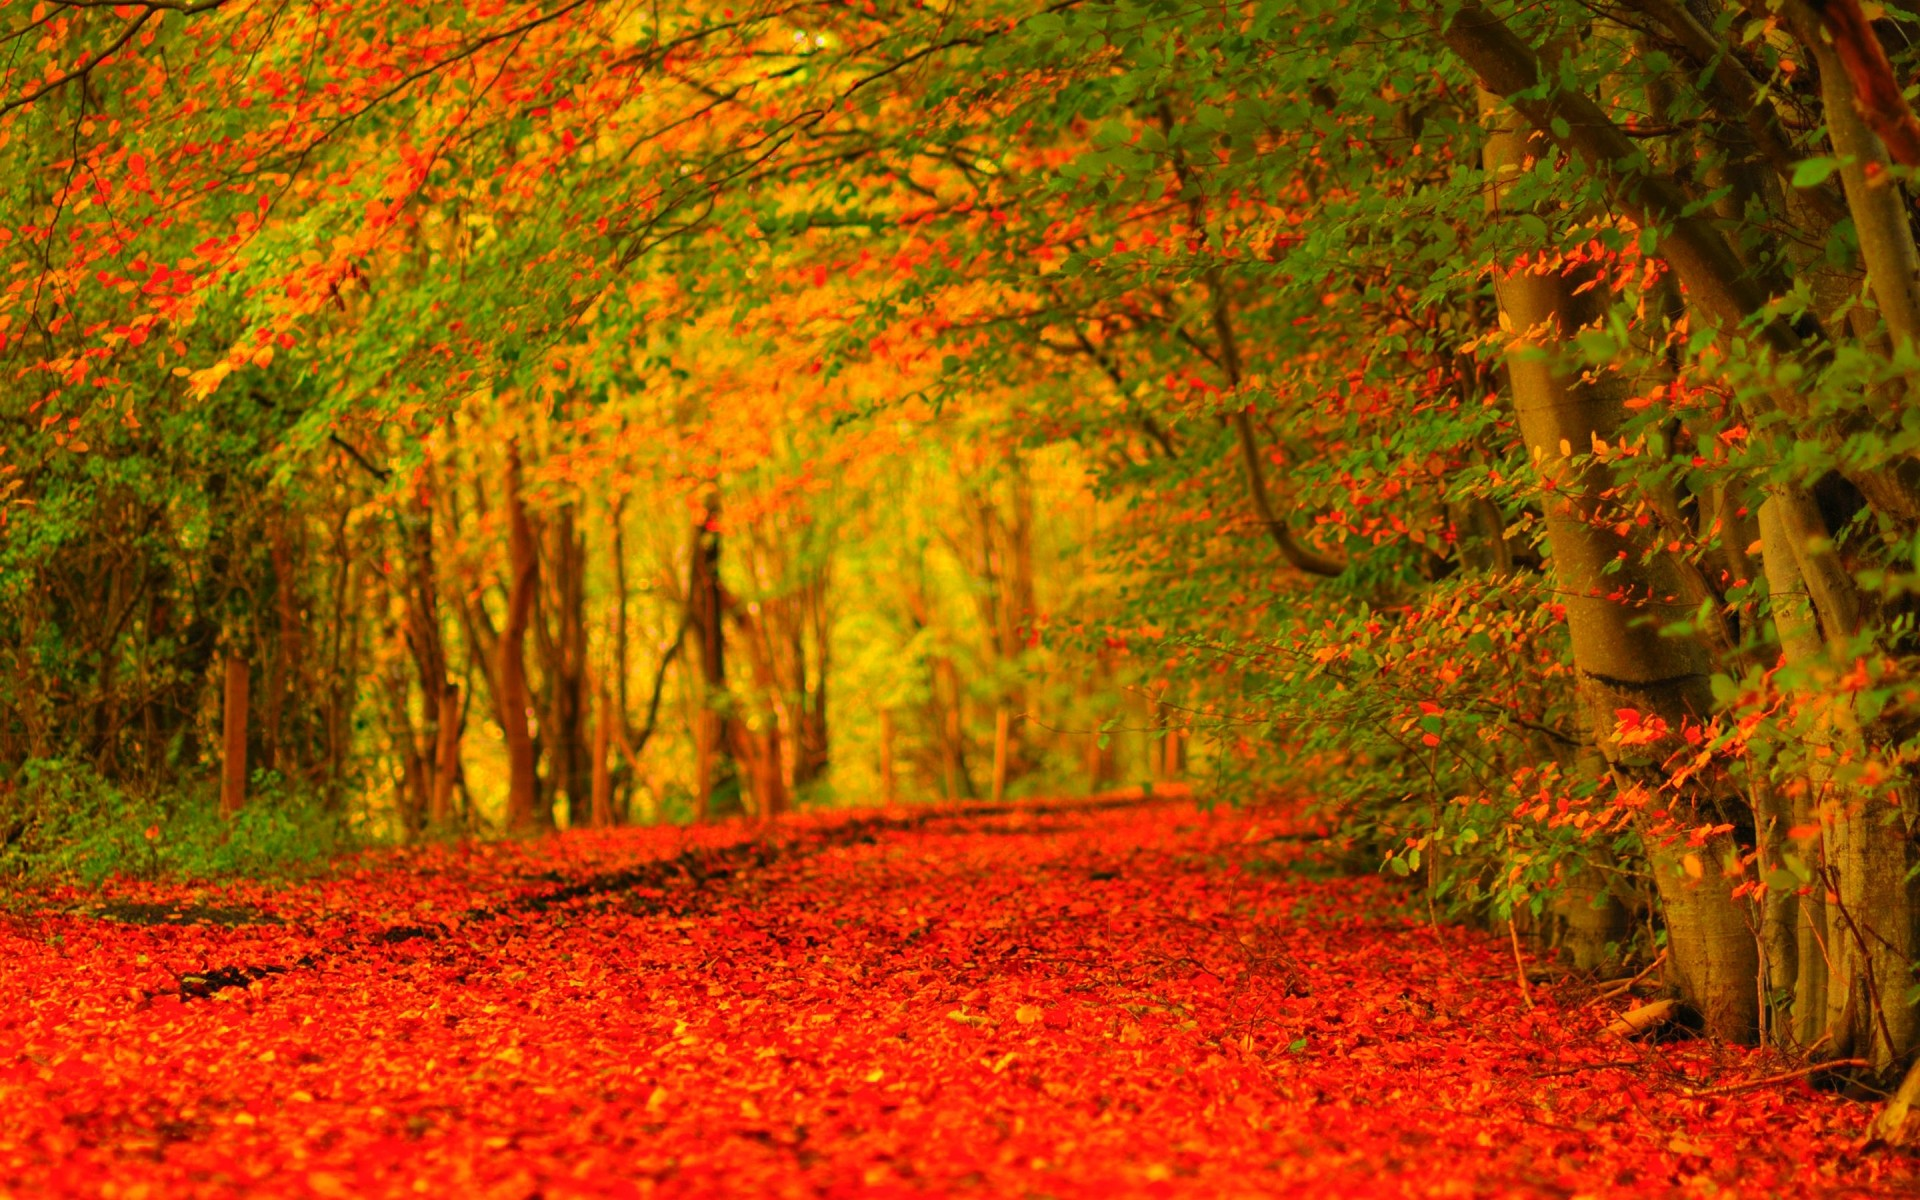 autumn wallpaper hd ·① download free wallpapers for desktop, mobile